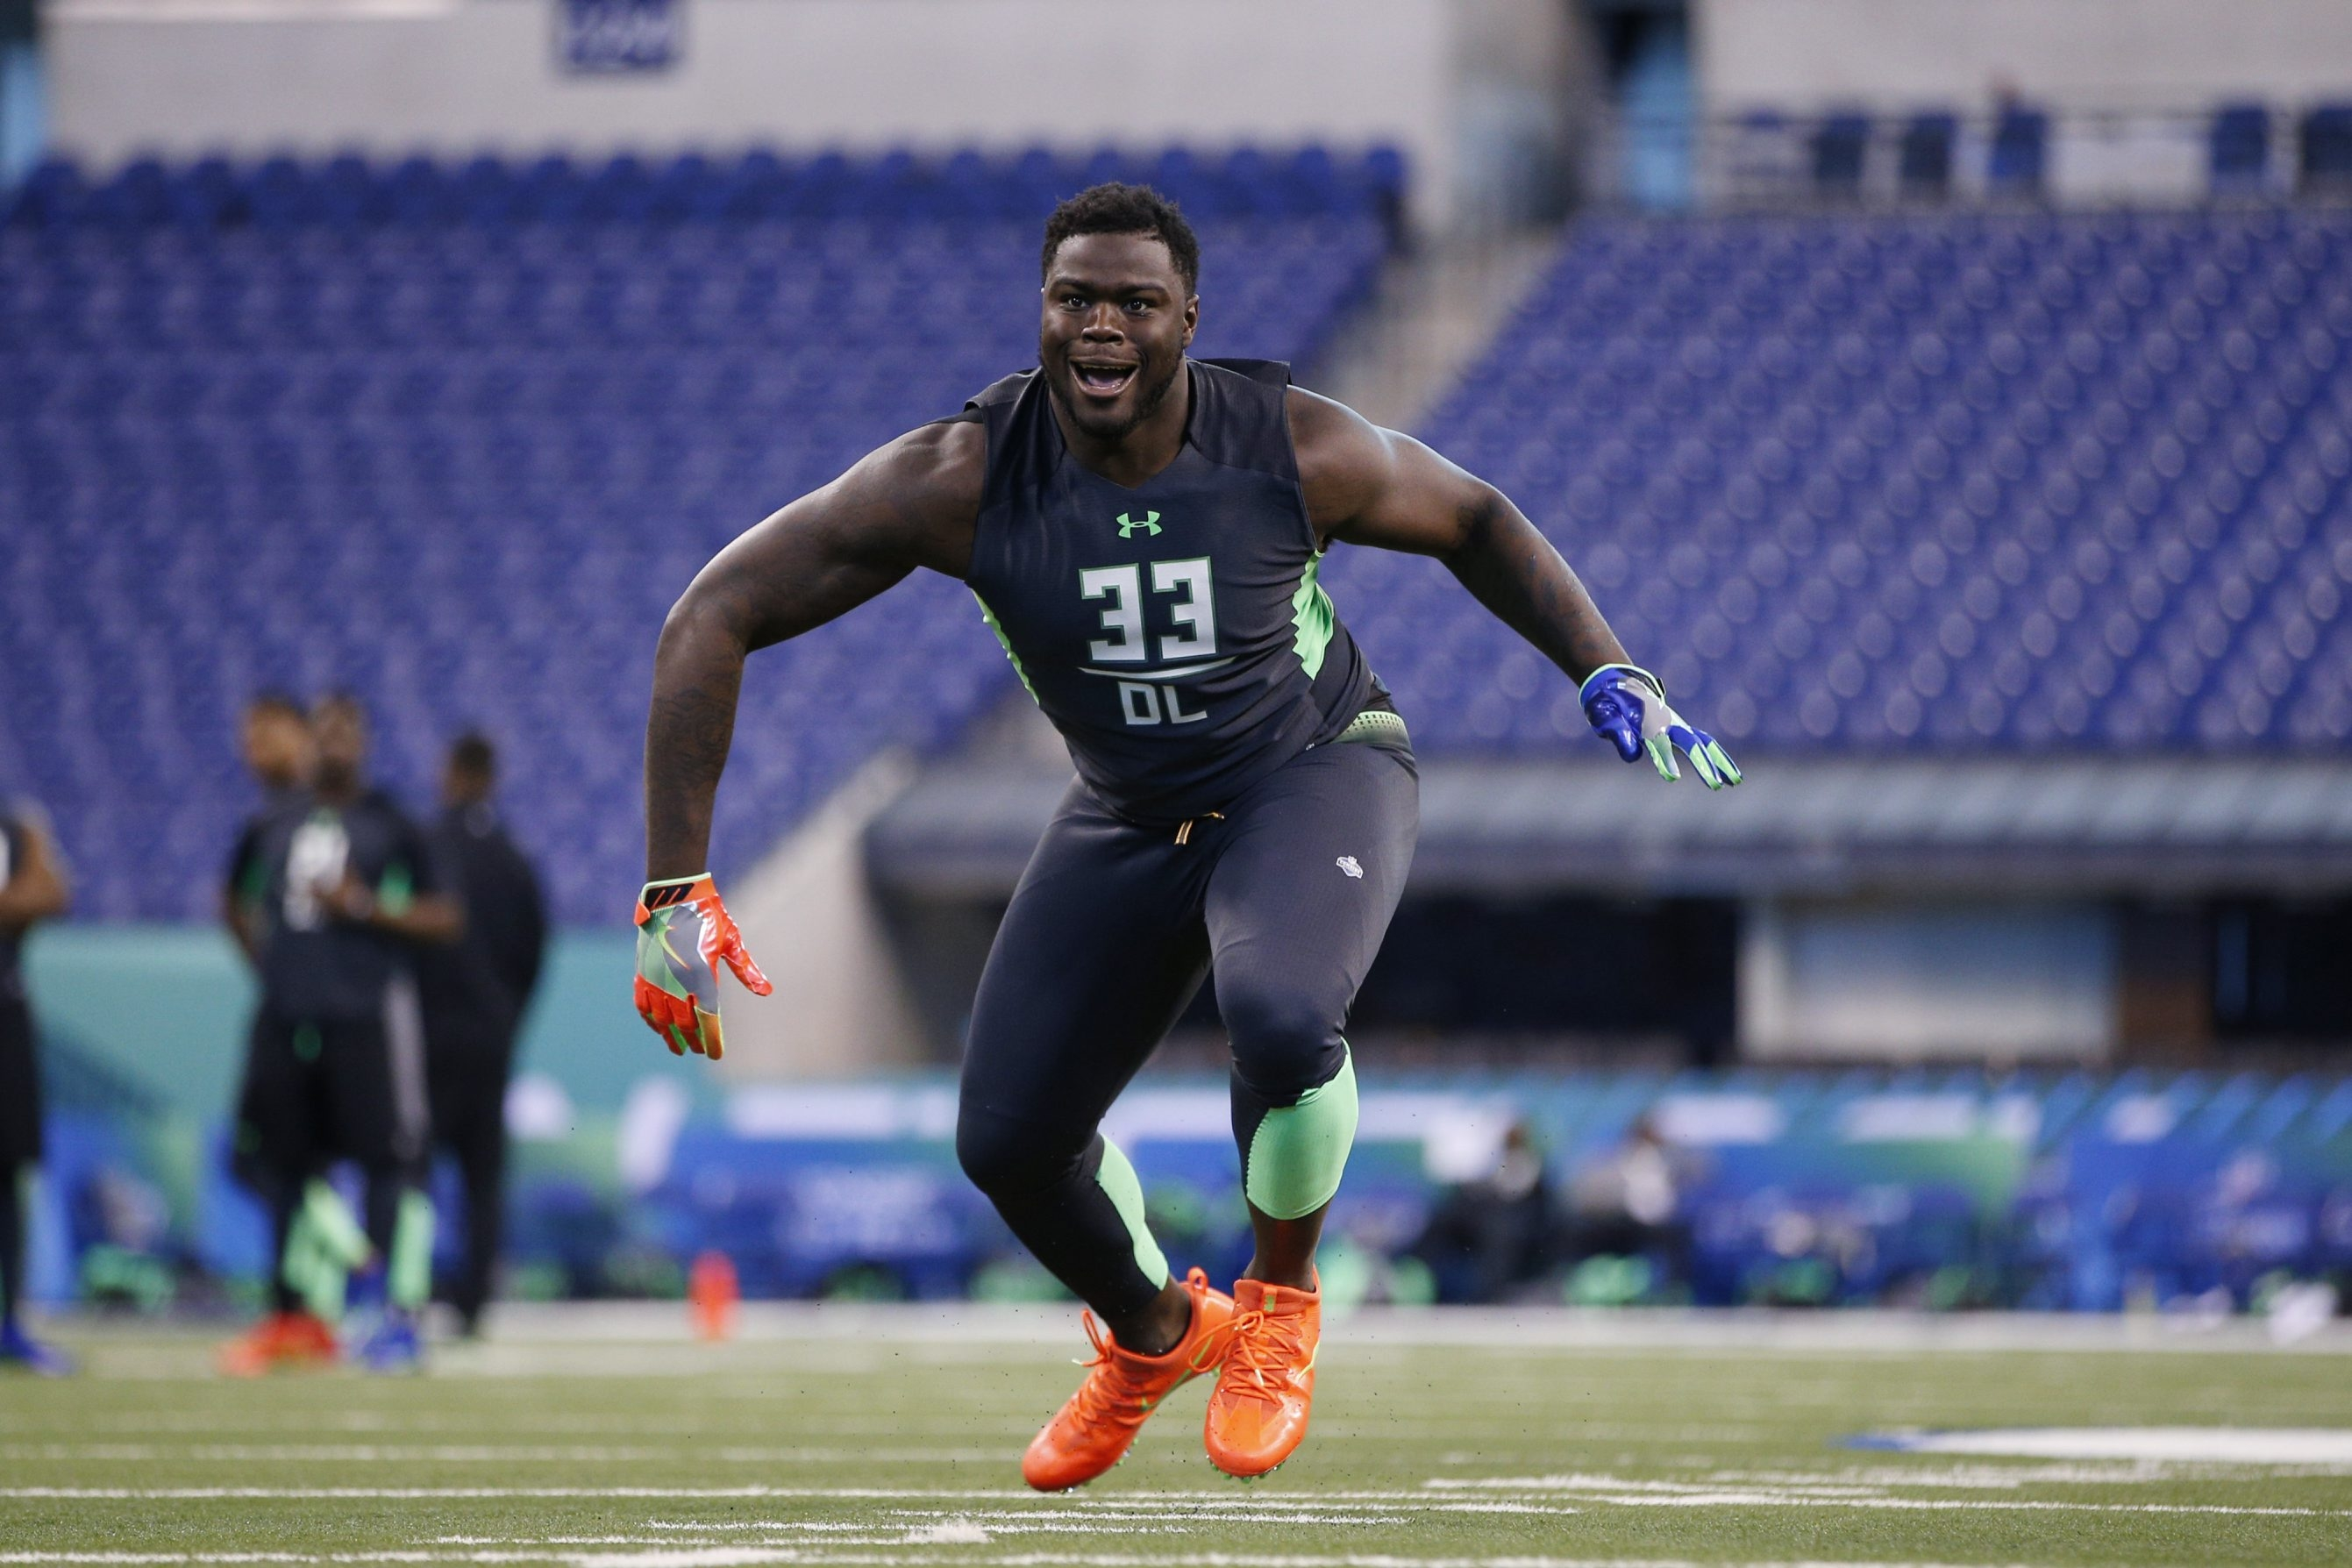 Defensive lineman Shaq Lawson of Clemson hopes to turn a strong impression at the 2016 NFL Scouting Combine into an improved draft position.